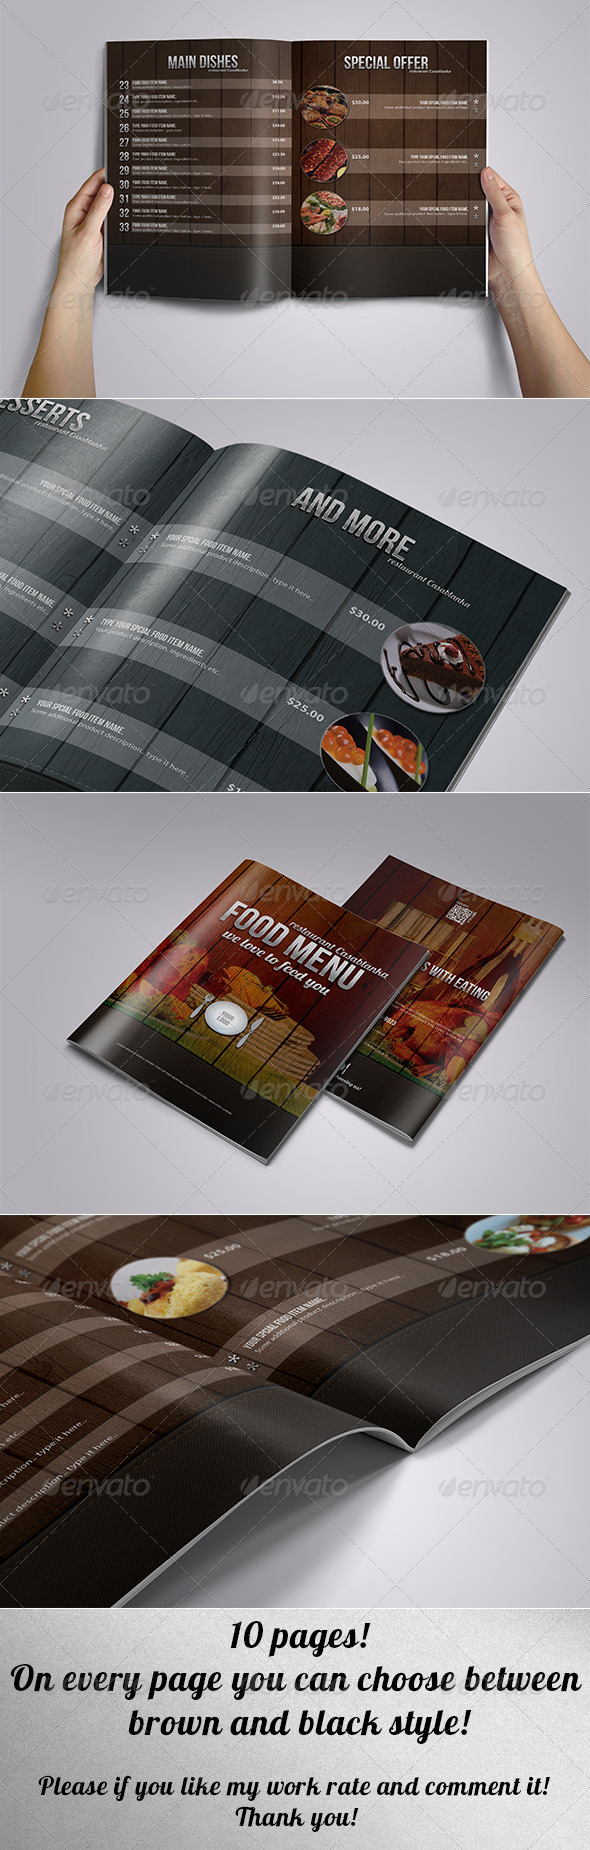 Elegant food menu leather and wood - Food Menus Print Templates